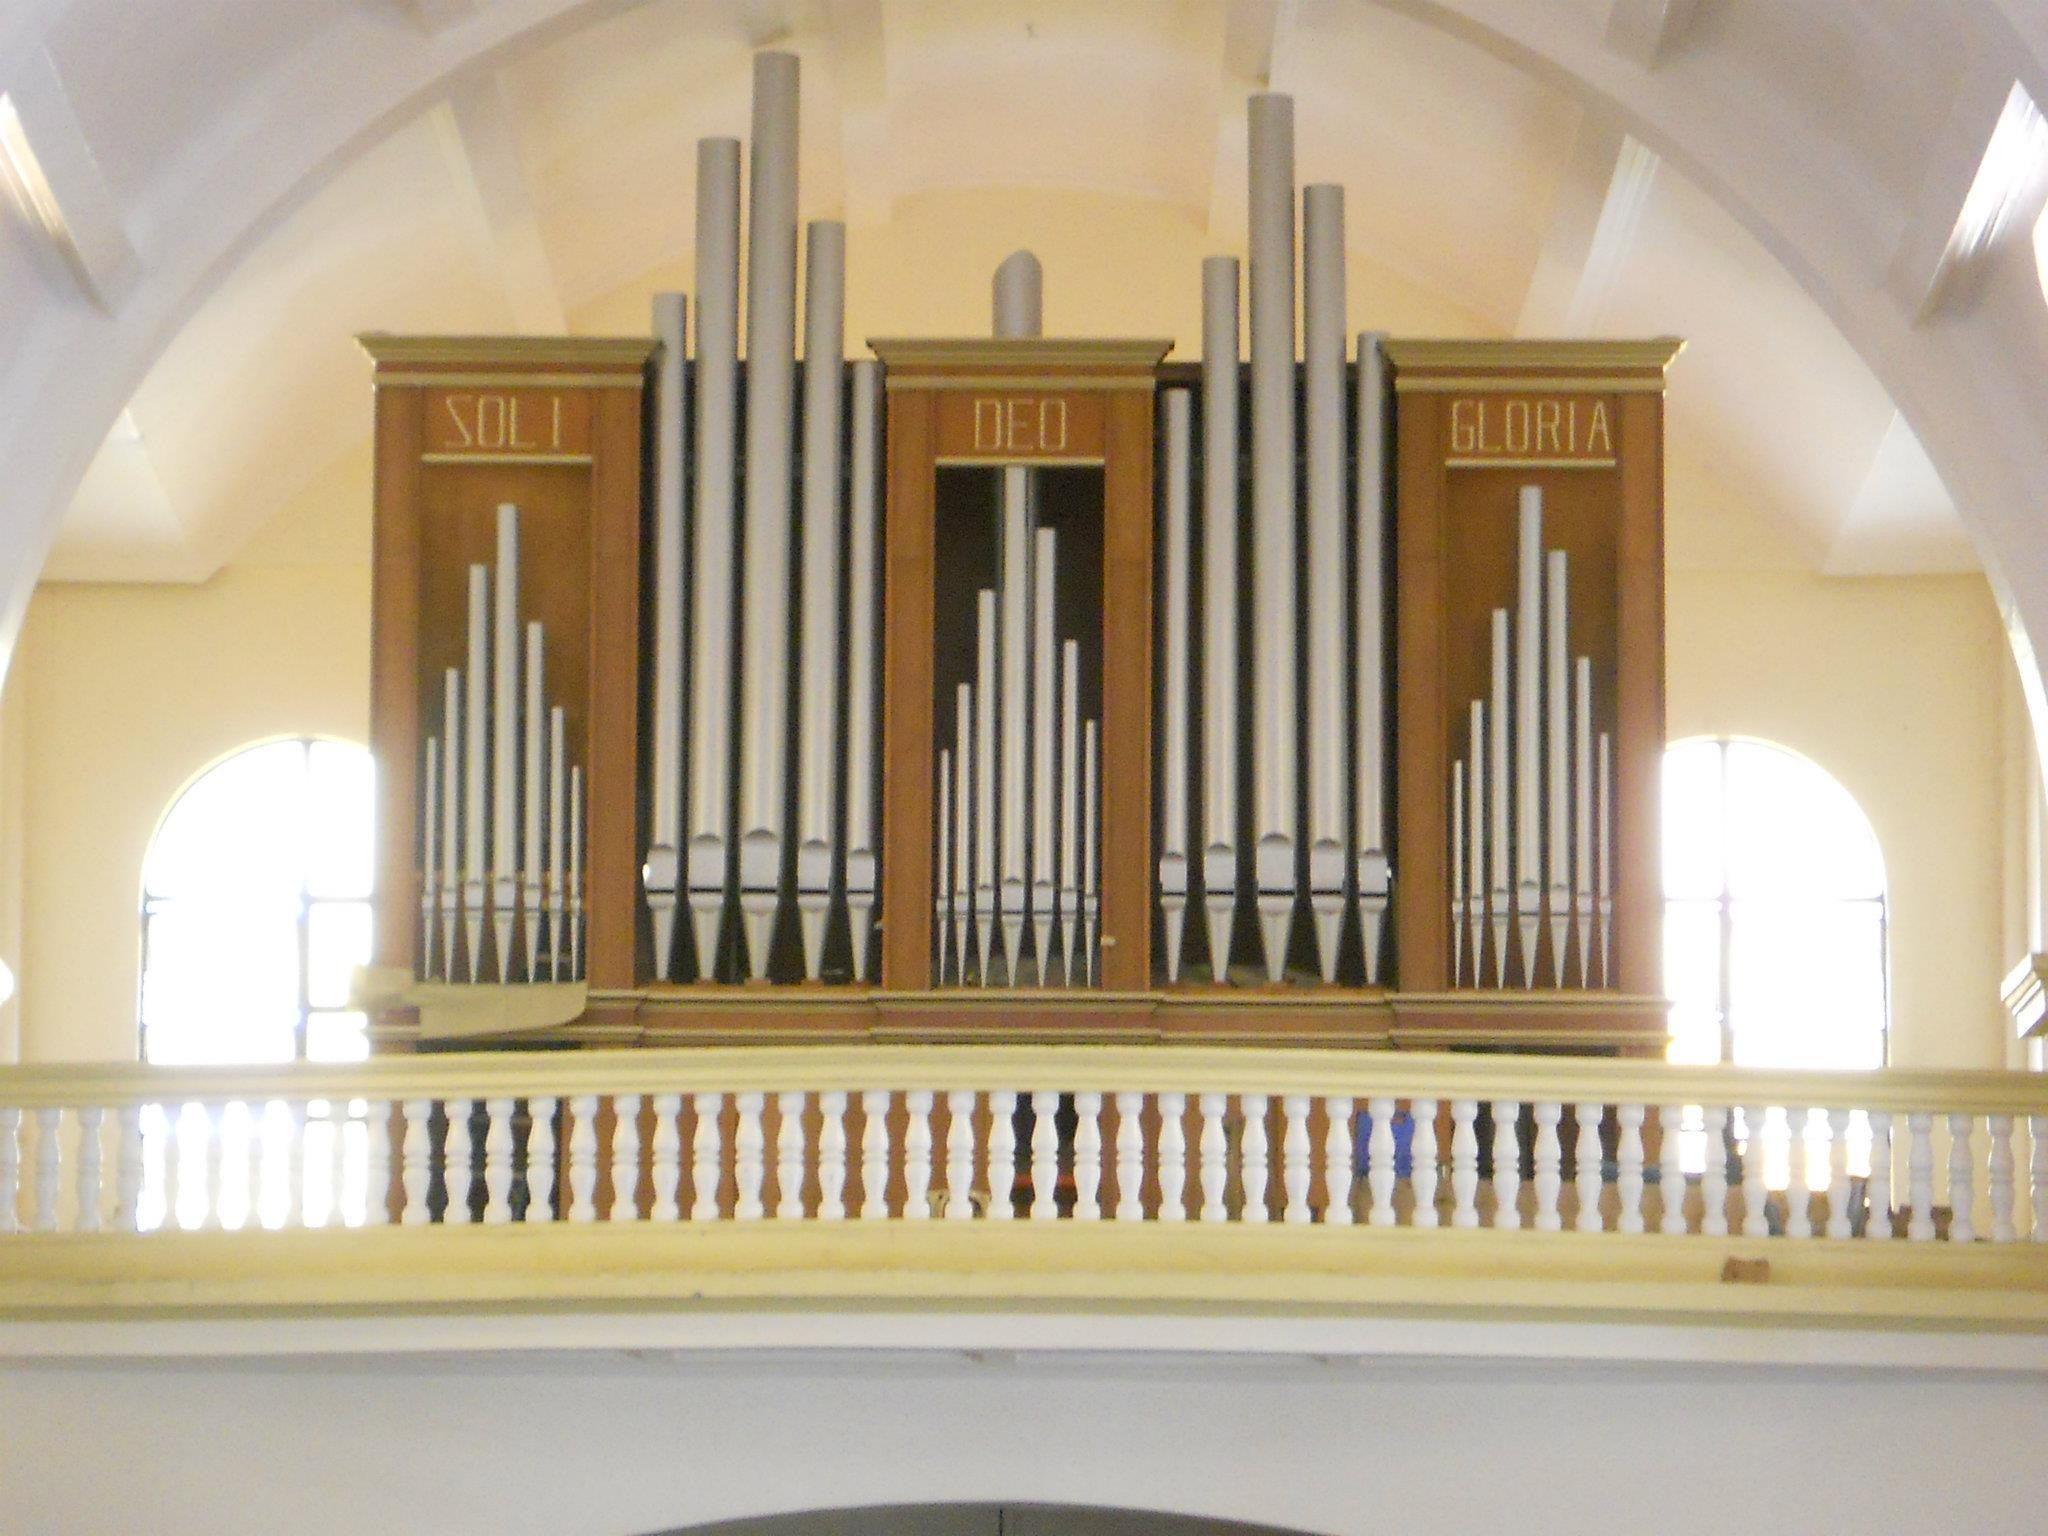 2048x1536 This majestic electro-pneumatic transept organ was constructed